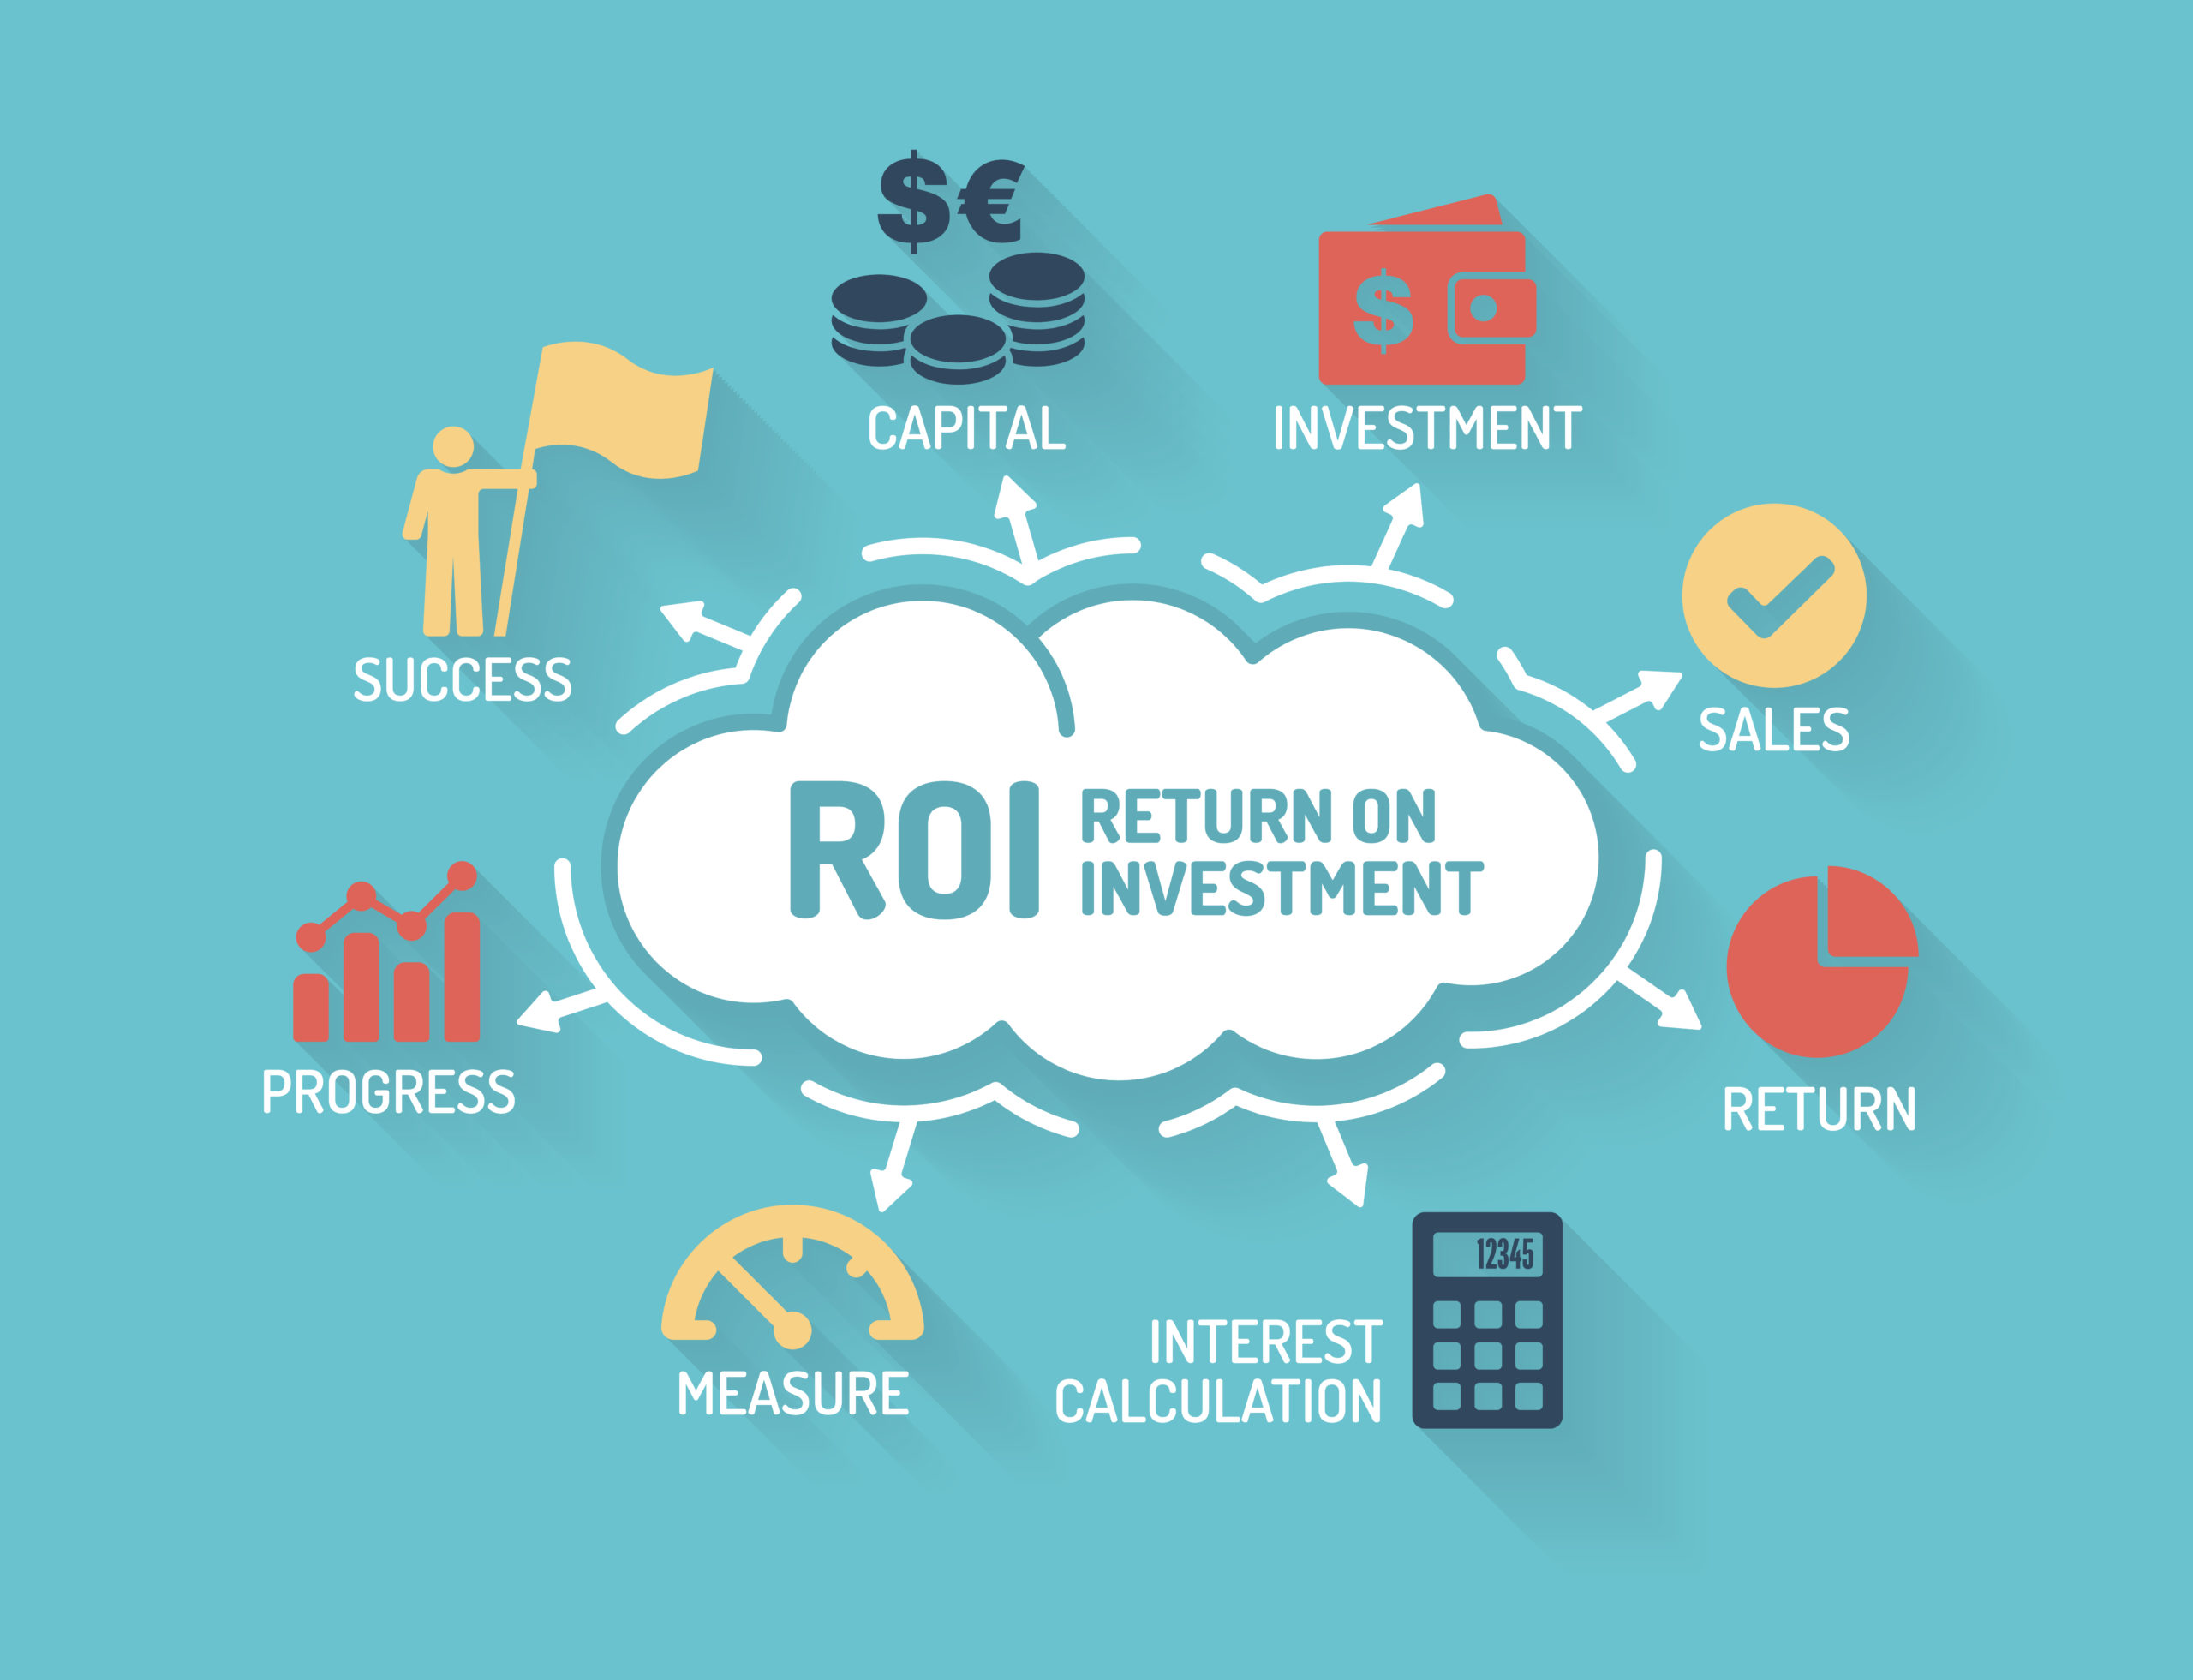 a marketing flywheel can boost your ROI